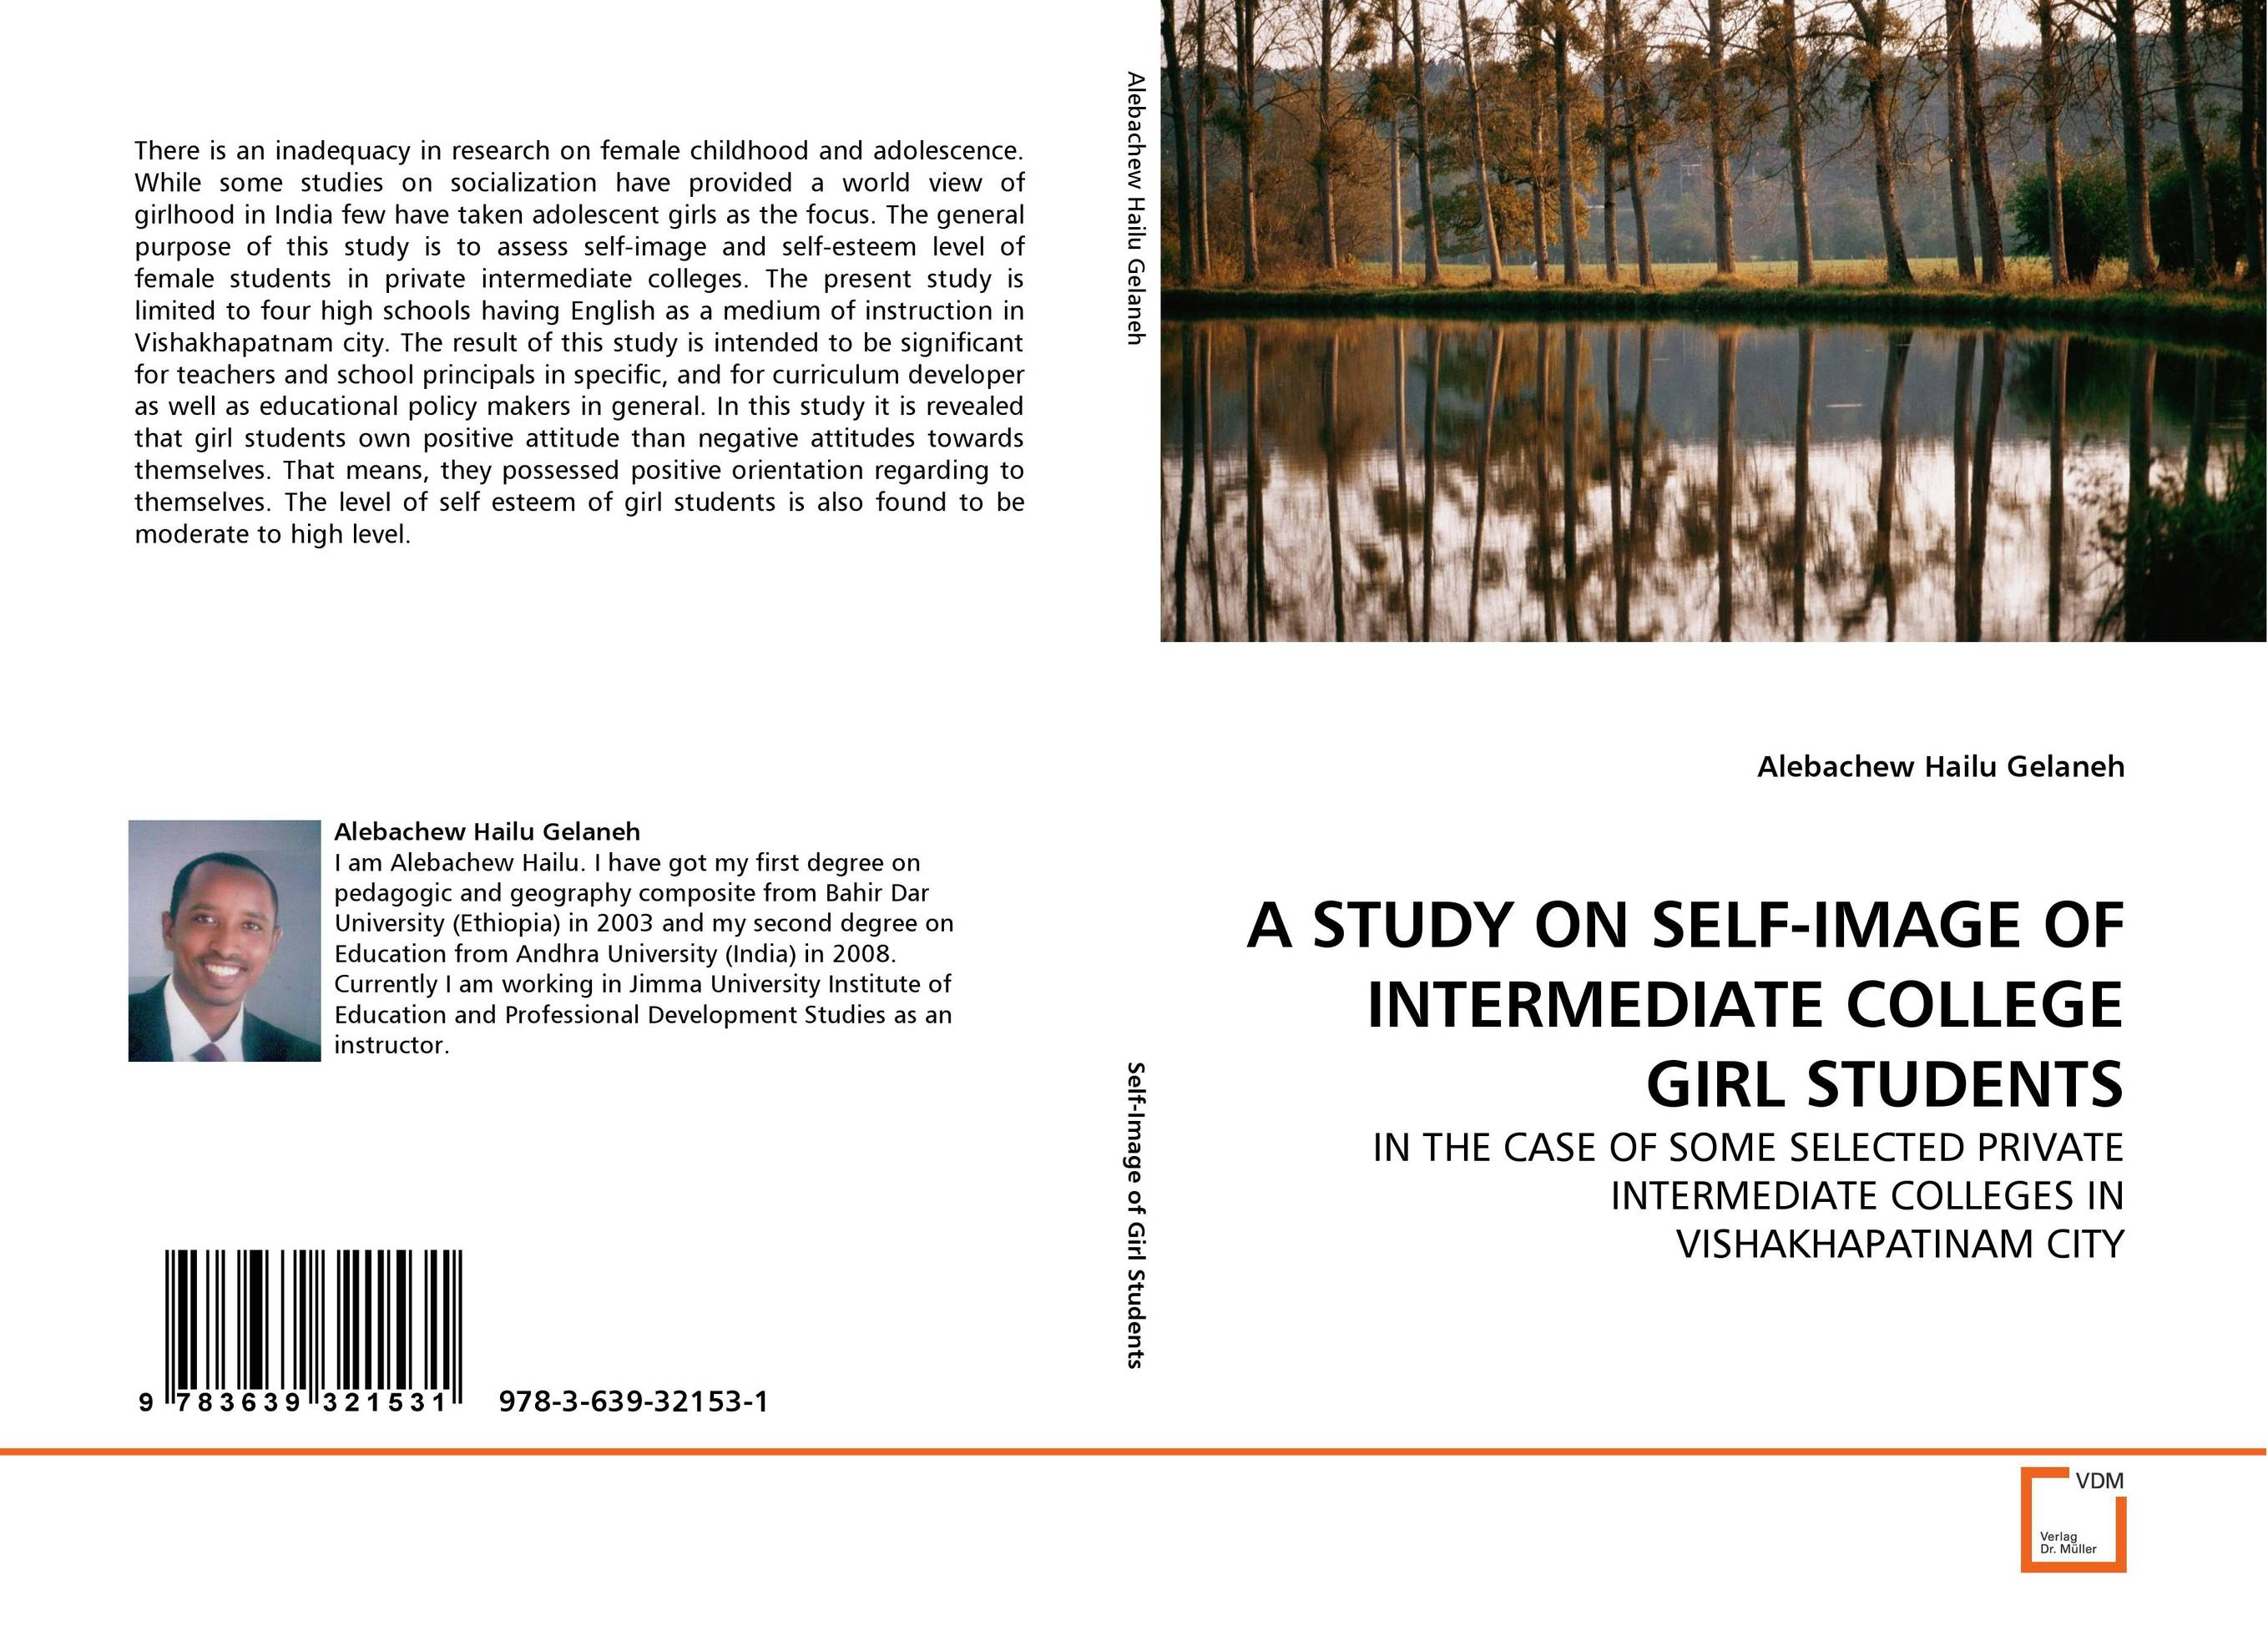 A STUDY ON SELF-IMAGE OF INTERMEDIATE COLLEGE GIRL STUDENTS